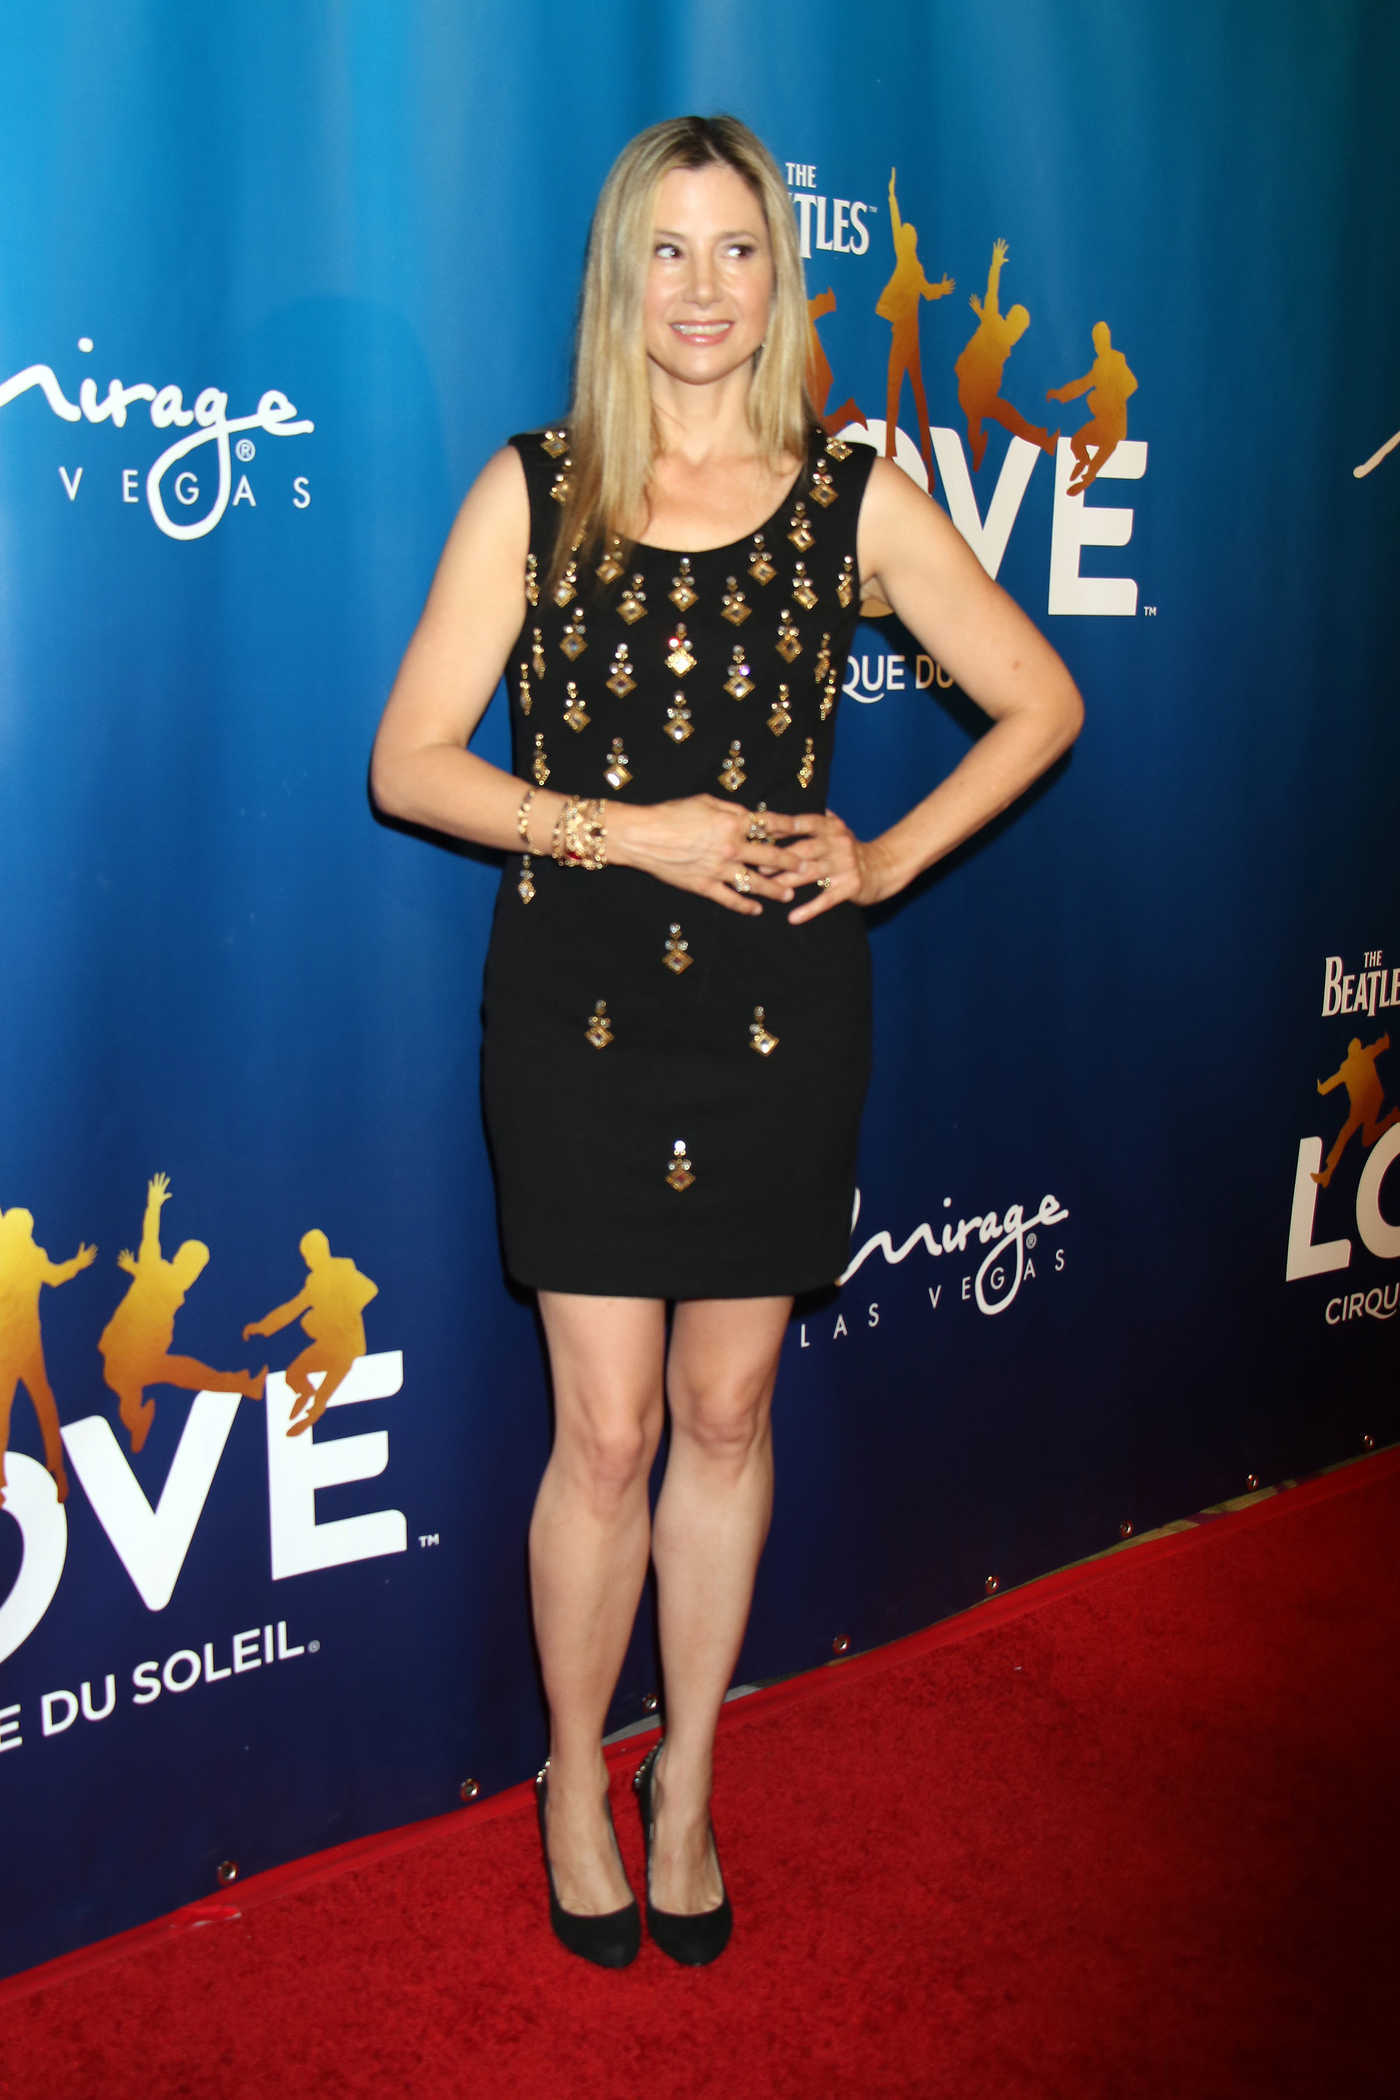 Mira Sorvino at 10th Anniversary Celebration of The Beatles Love in Las Vegas 07/14/2016